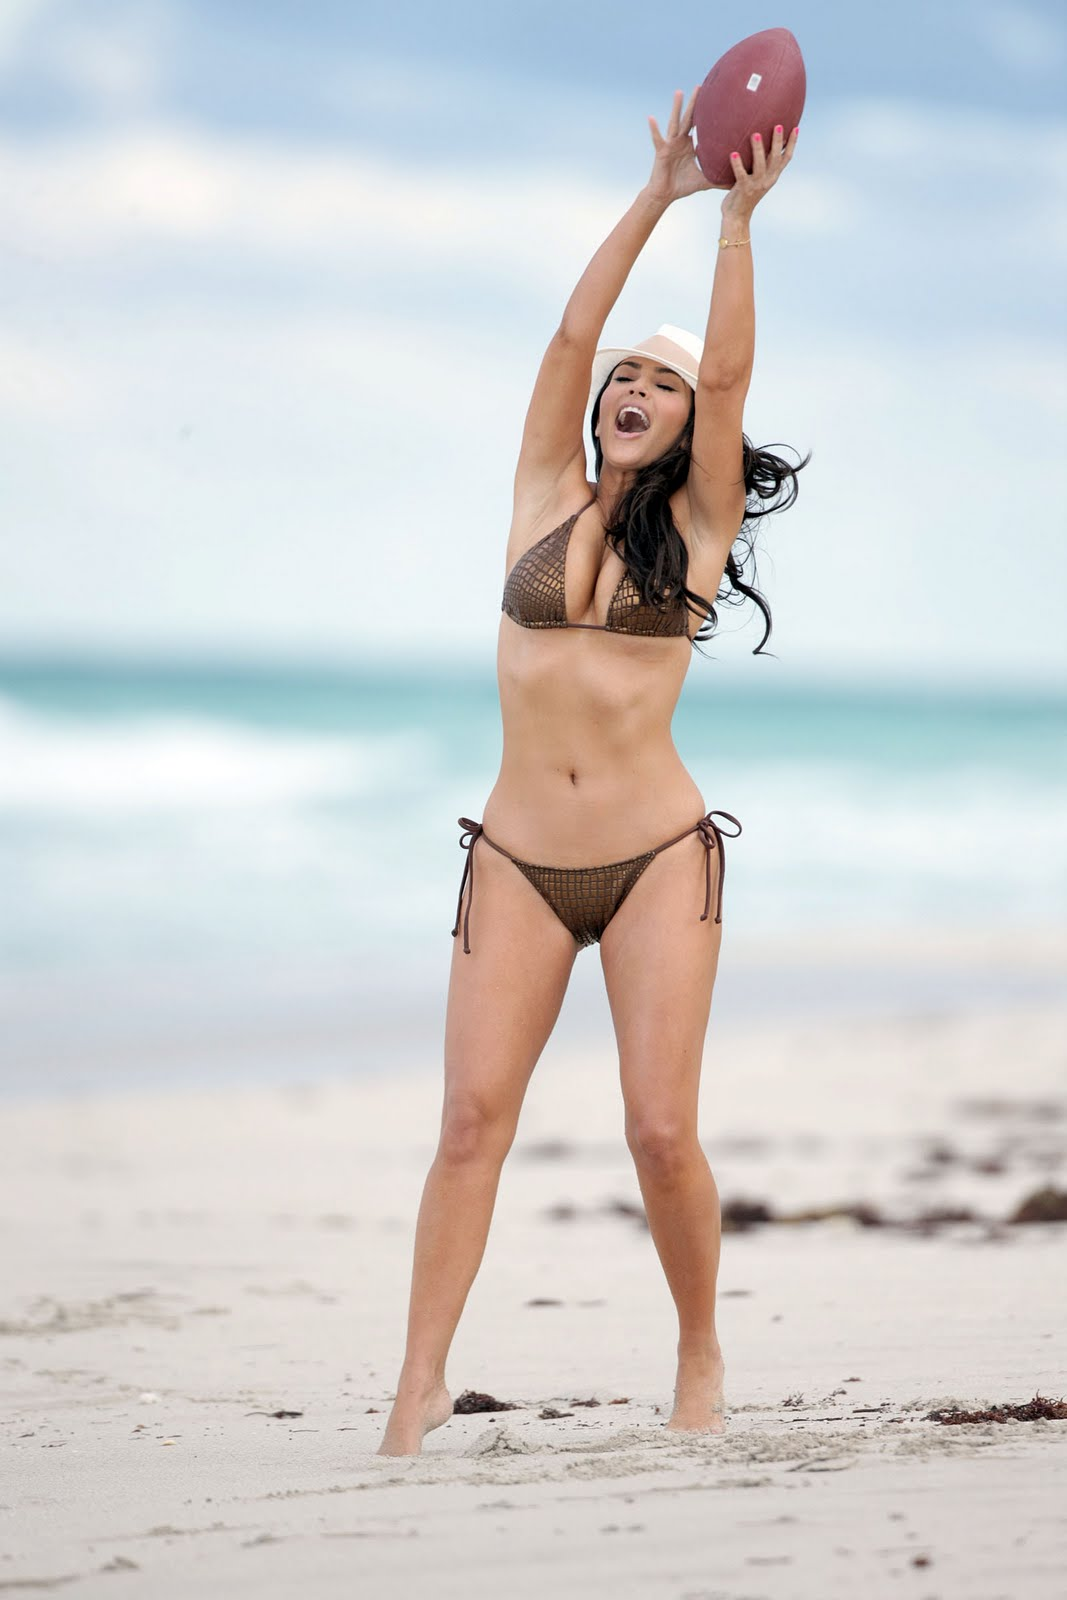 Kim Kardashian  Bikini Candids At The Beach In Miami Hq -4669